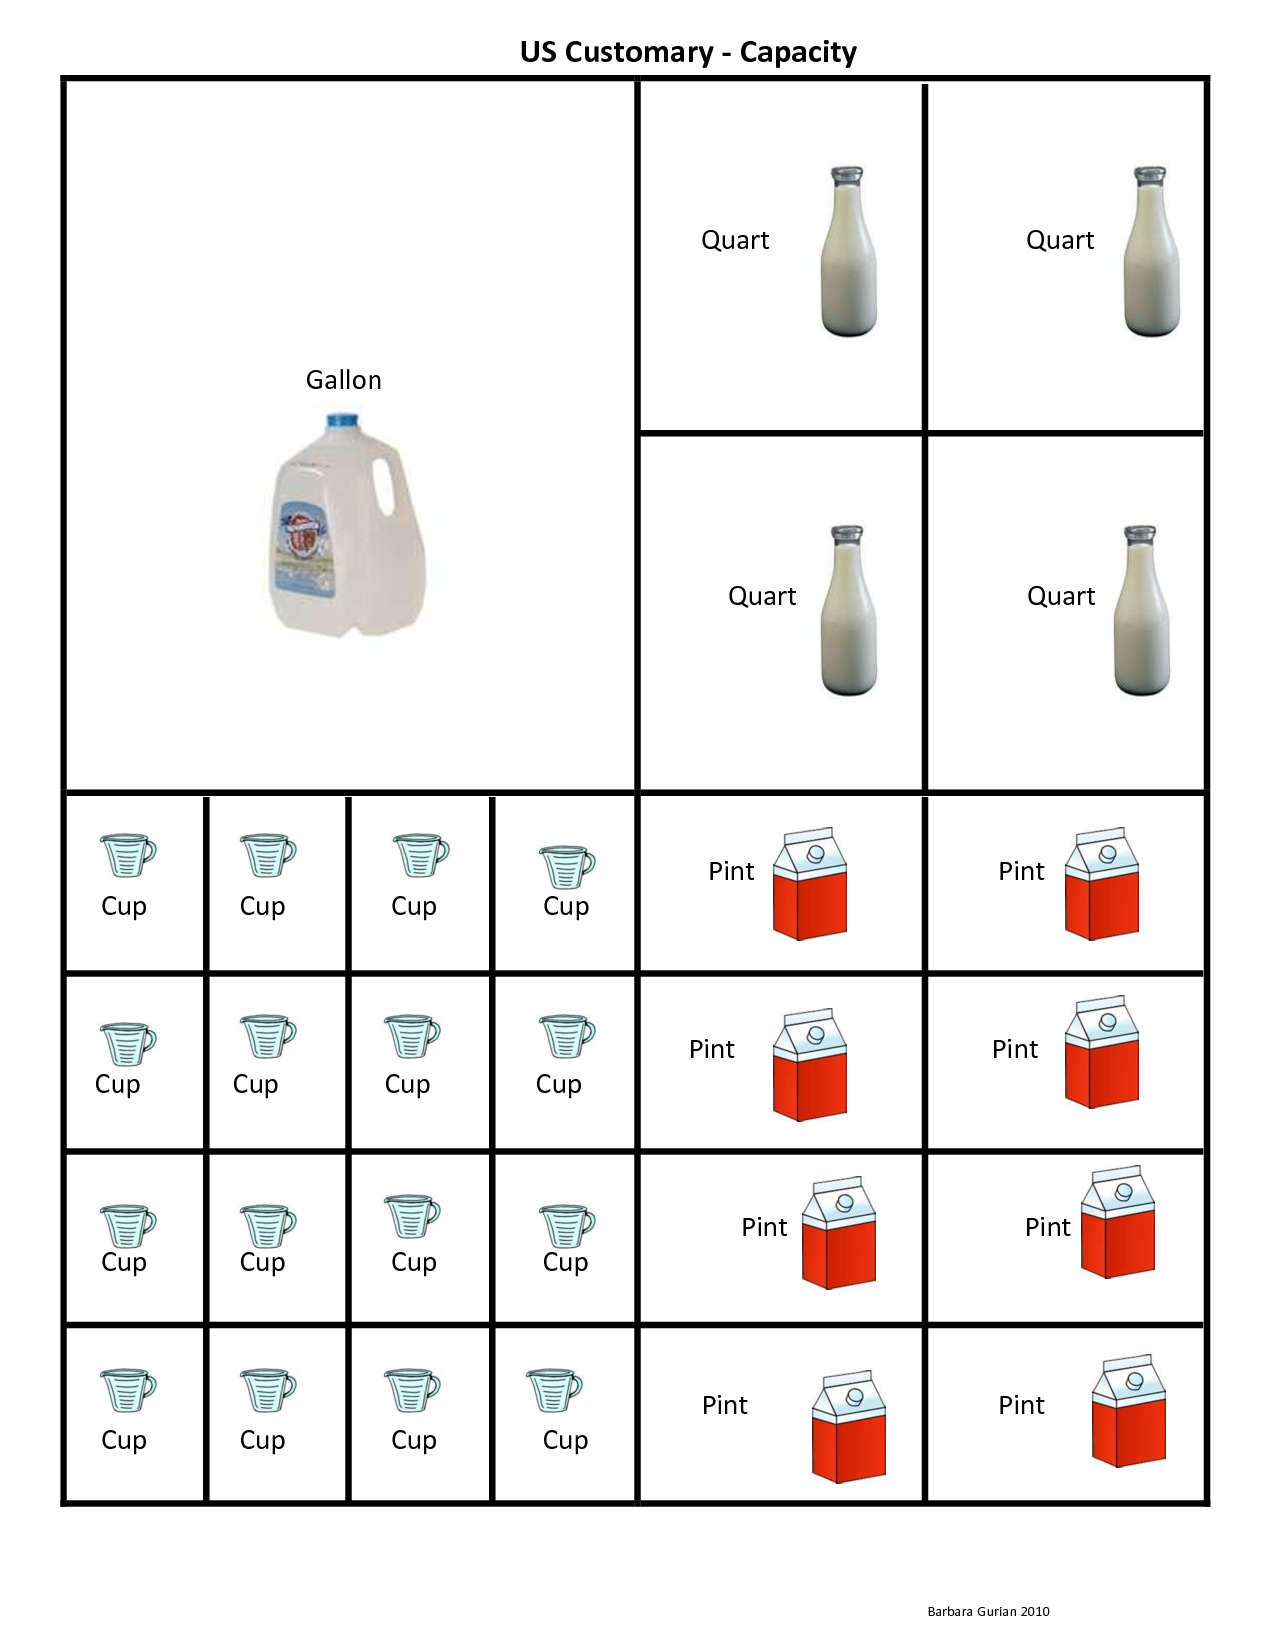 Worksheet 16 Cups Quarts gallon quart pint cup clipart kid is 4 quarts a free cliparts all used for free